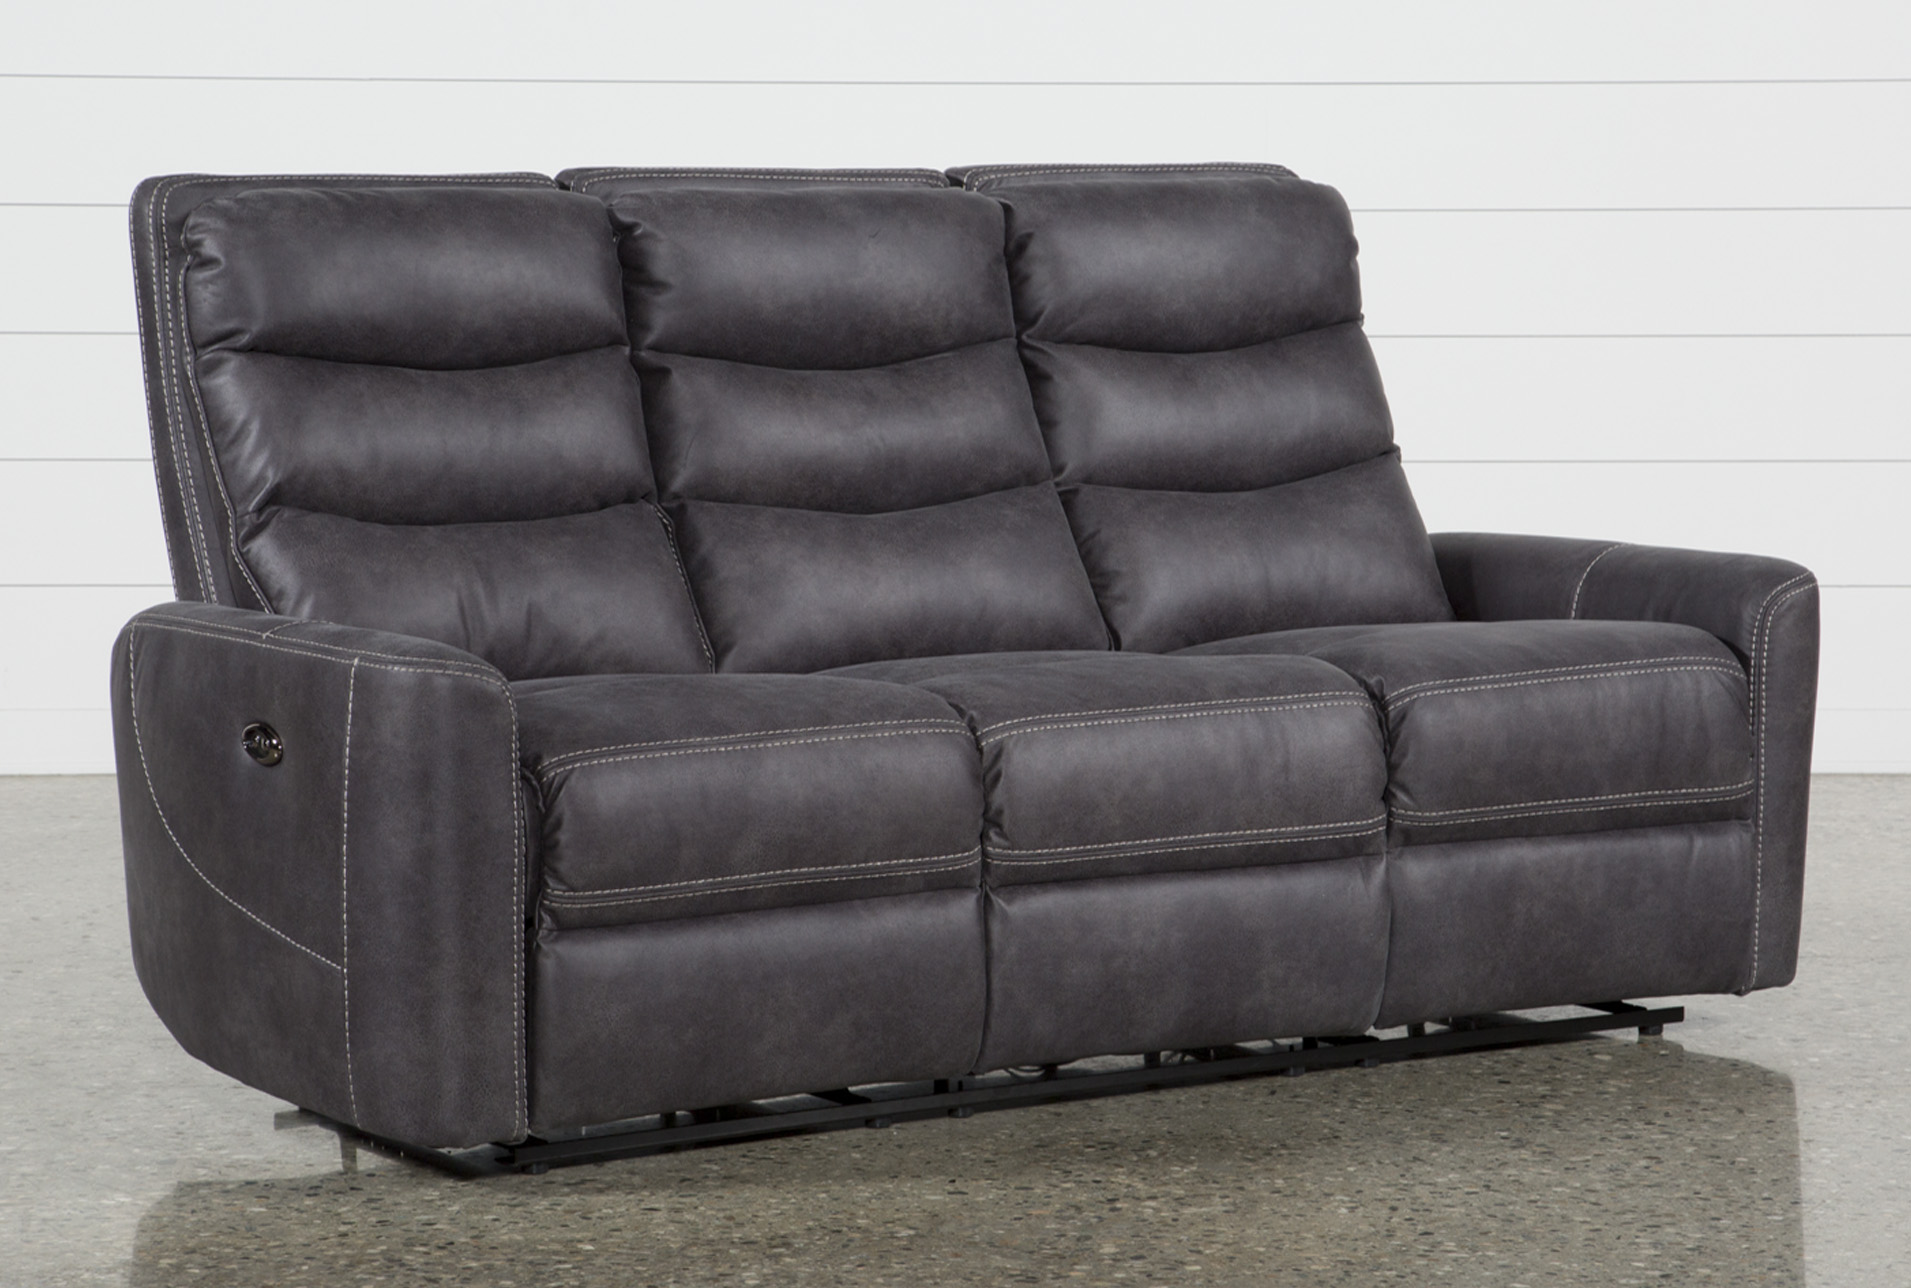 malia power reclining sofa with usb living spaces rh livingspaces com power reclining furniture power reclining sofas and sectionals